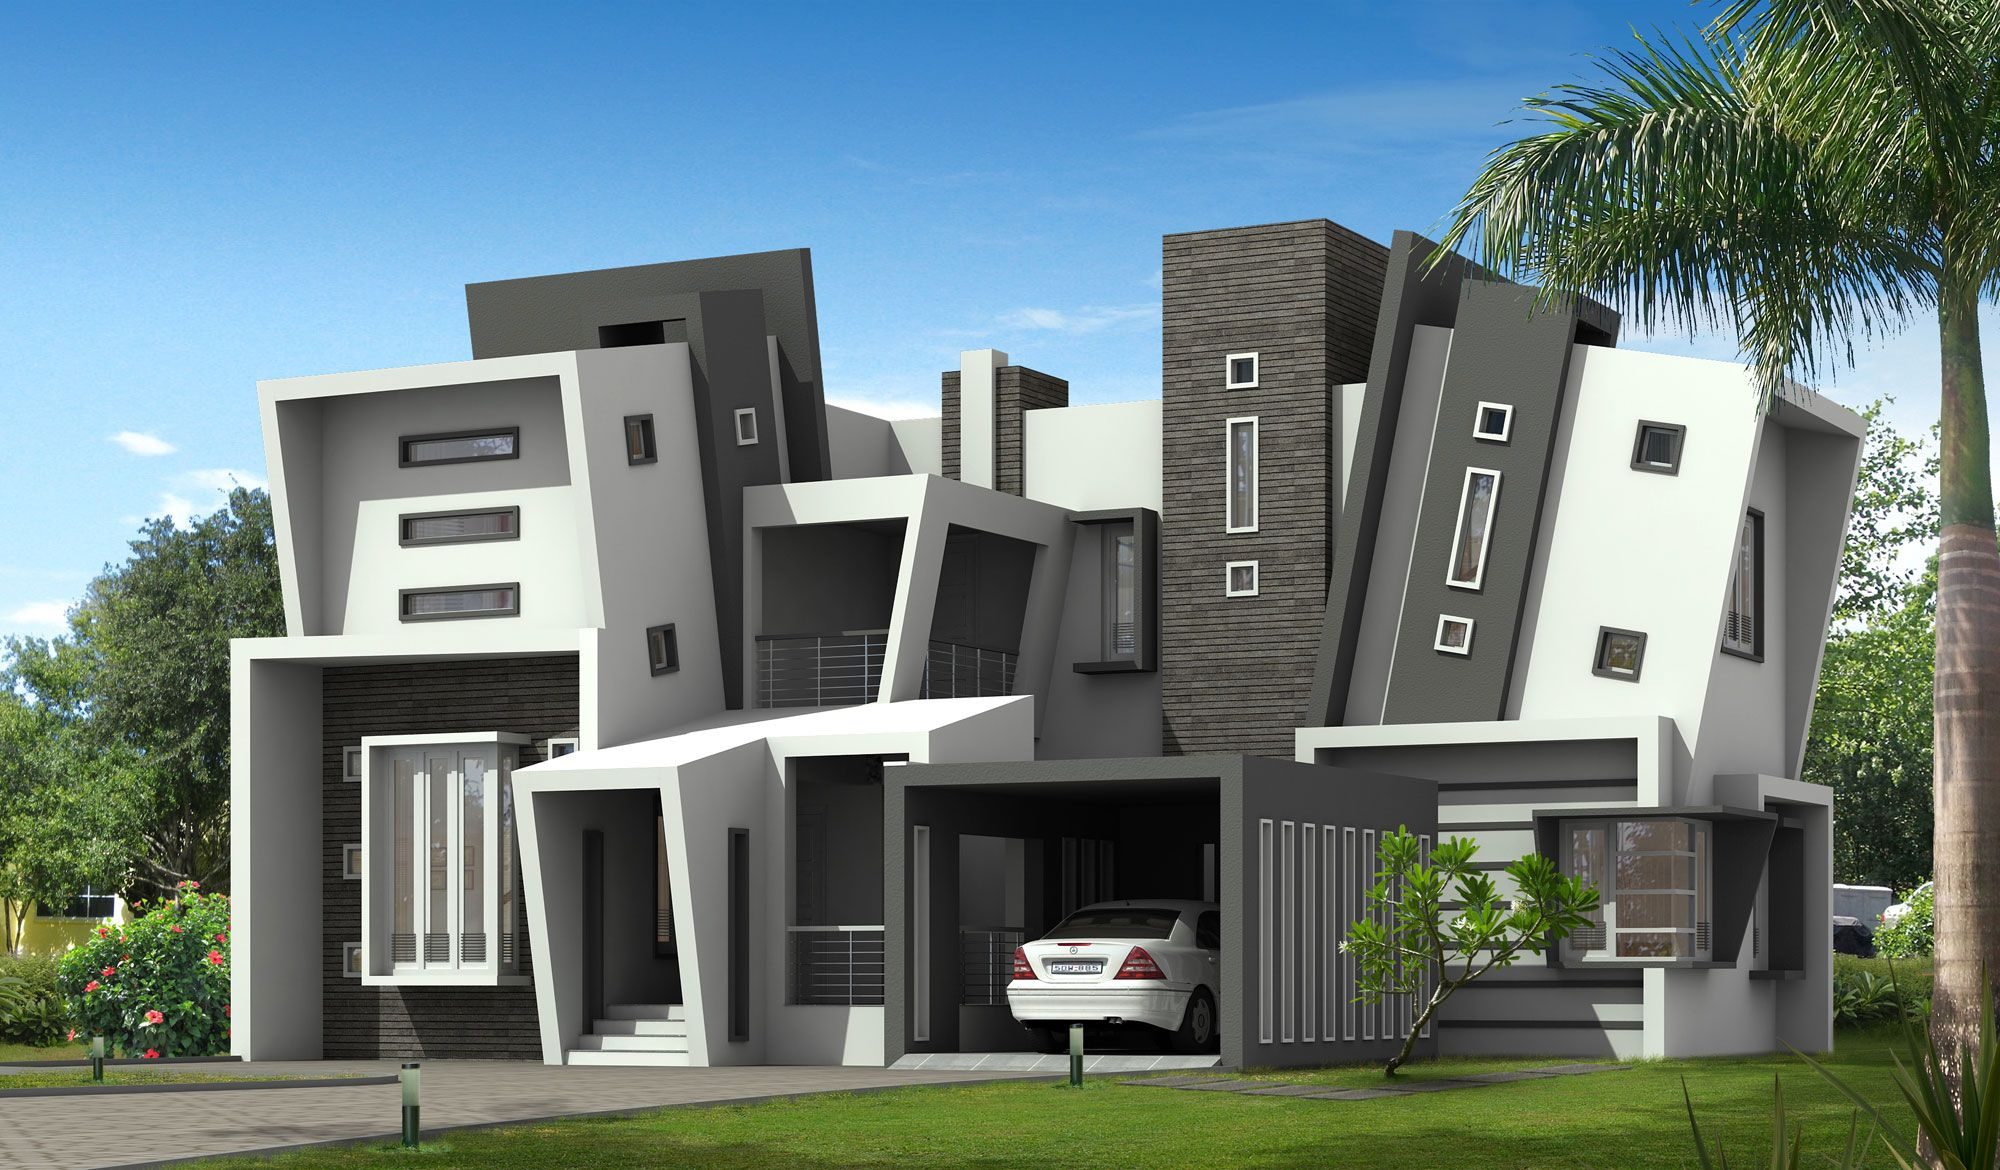 Awe Inspiring Of Unique Trendy House Kerala Home Design Architecture Plans Largest Home Design Picture Inspirations Pitcheantrous